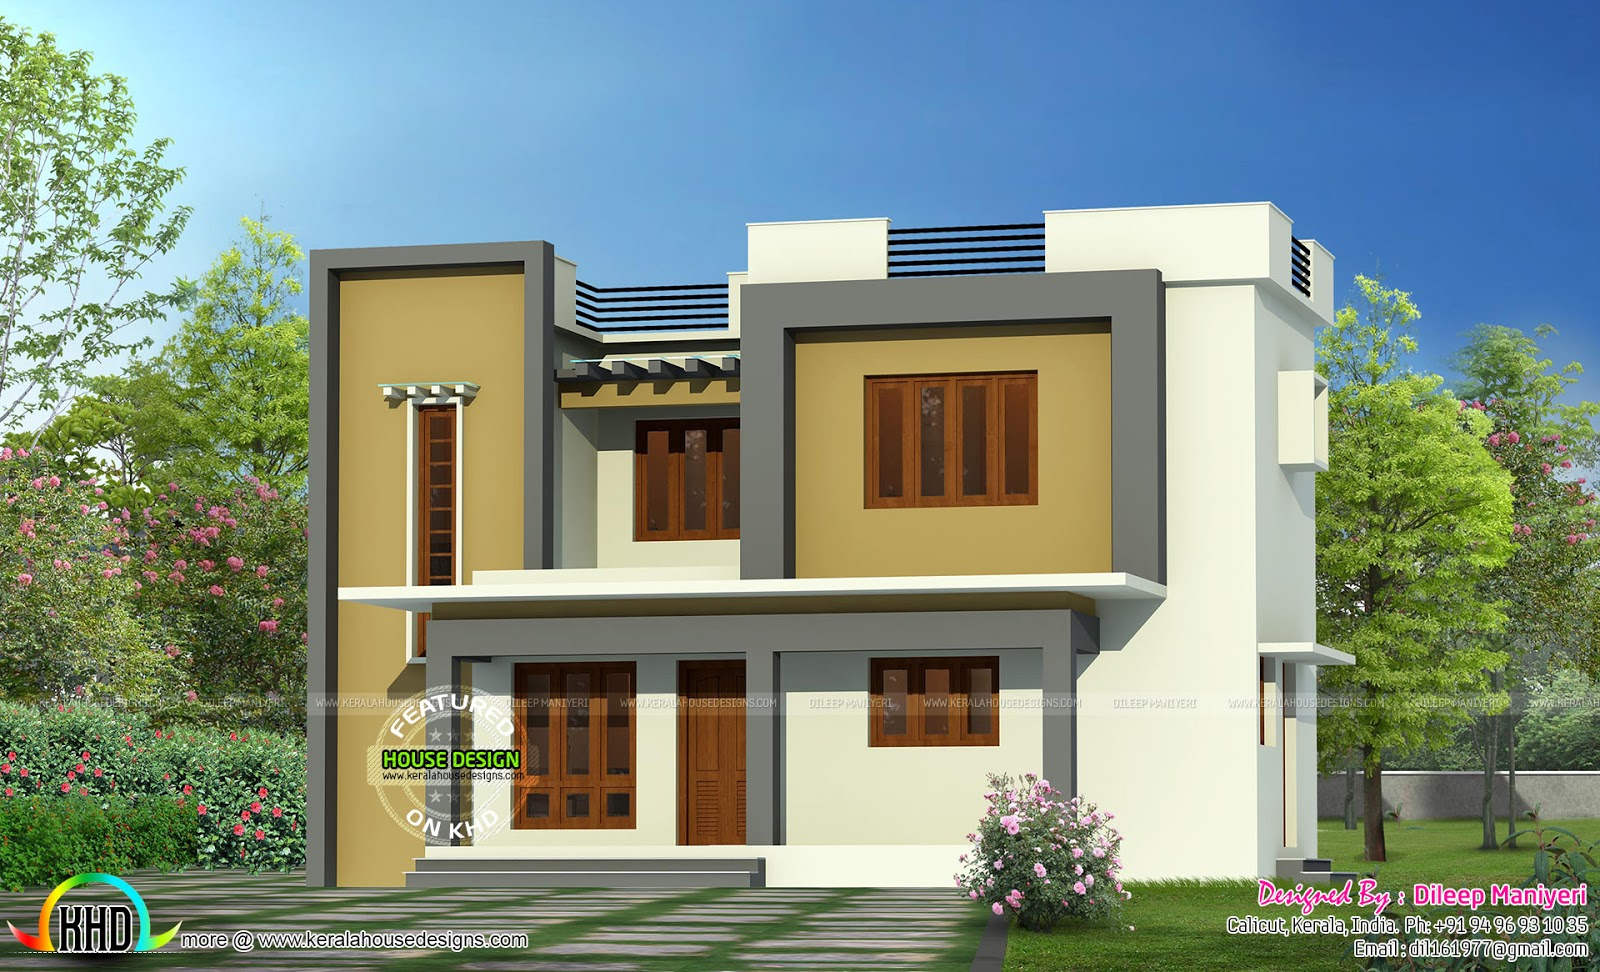 Simple Flat Roof Home Architecture Kerala Home Design And Floor Plans